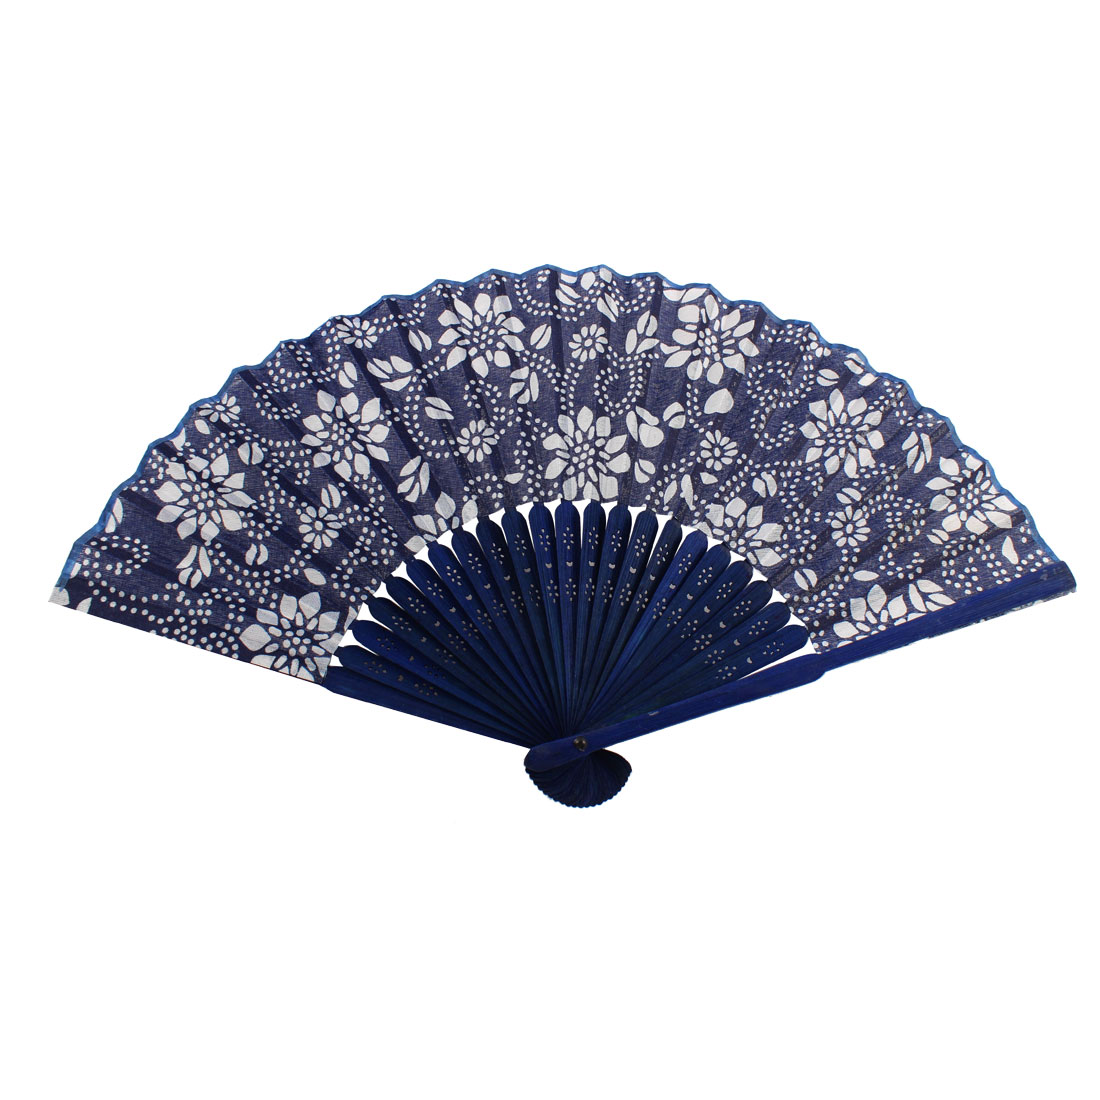 Chinese Style Bamboo Handle Fabric Flower Print Folding Hand Fan Navy Blue